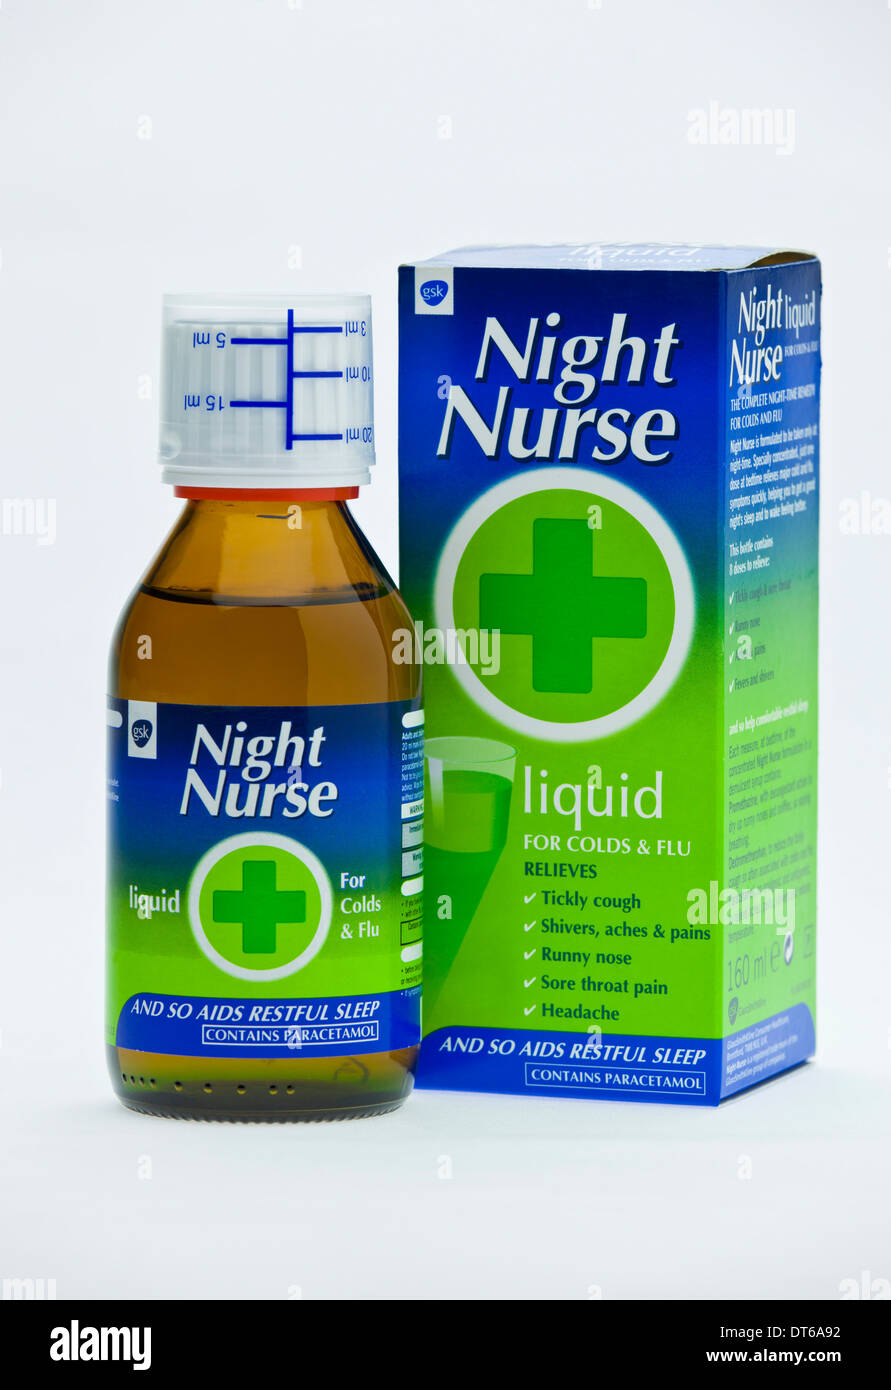 Night Nurse Cold and Flu Remedy on white background - Stock Image